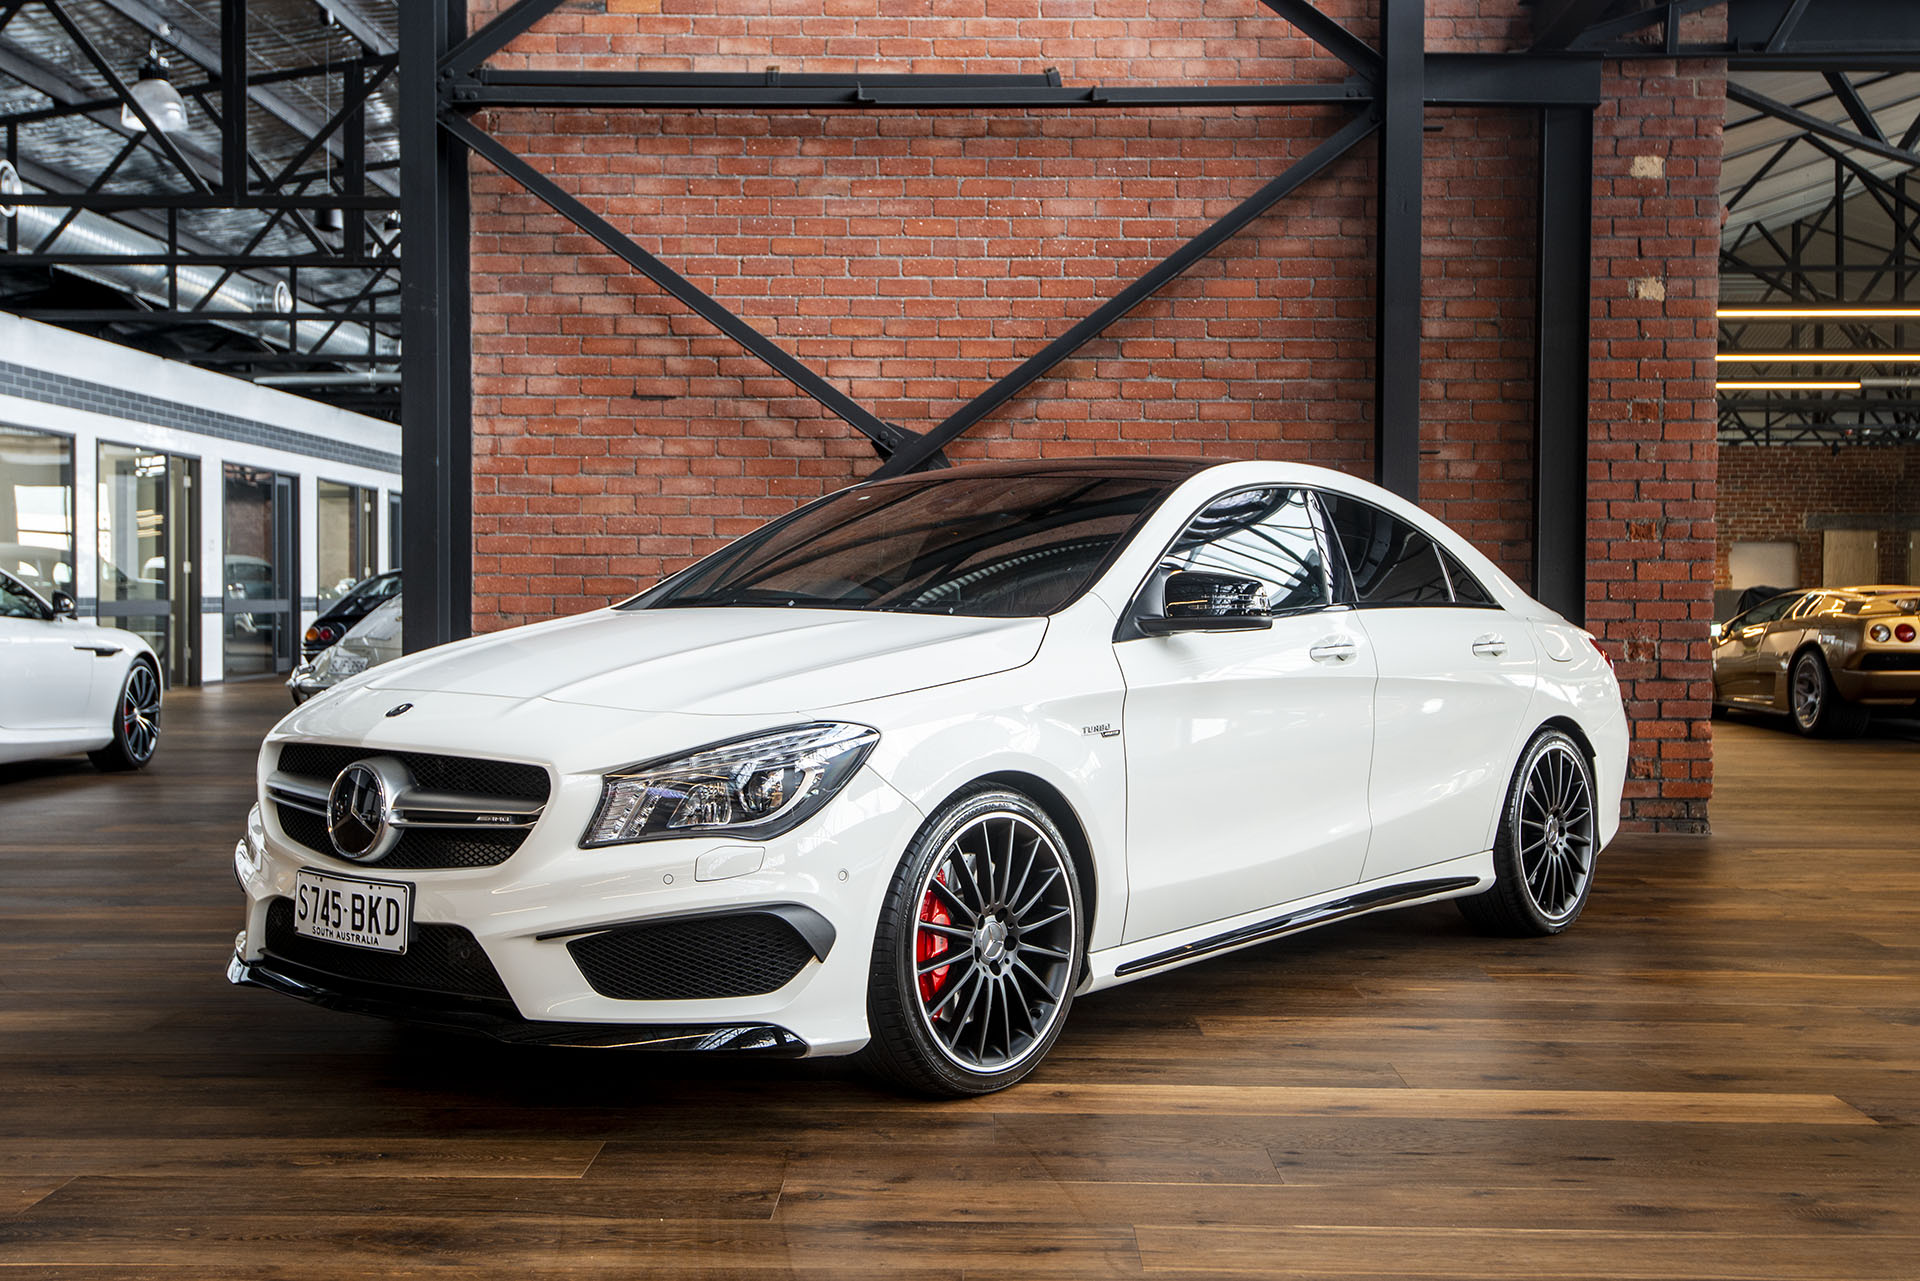 Mercedes Cla 45 Amg For Sale >> 2016 Mercedes Benz CLA45 AMG - Richmonds - Classic and Prestige Cars - Storage and Sales ...